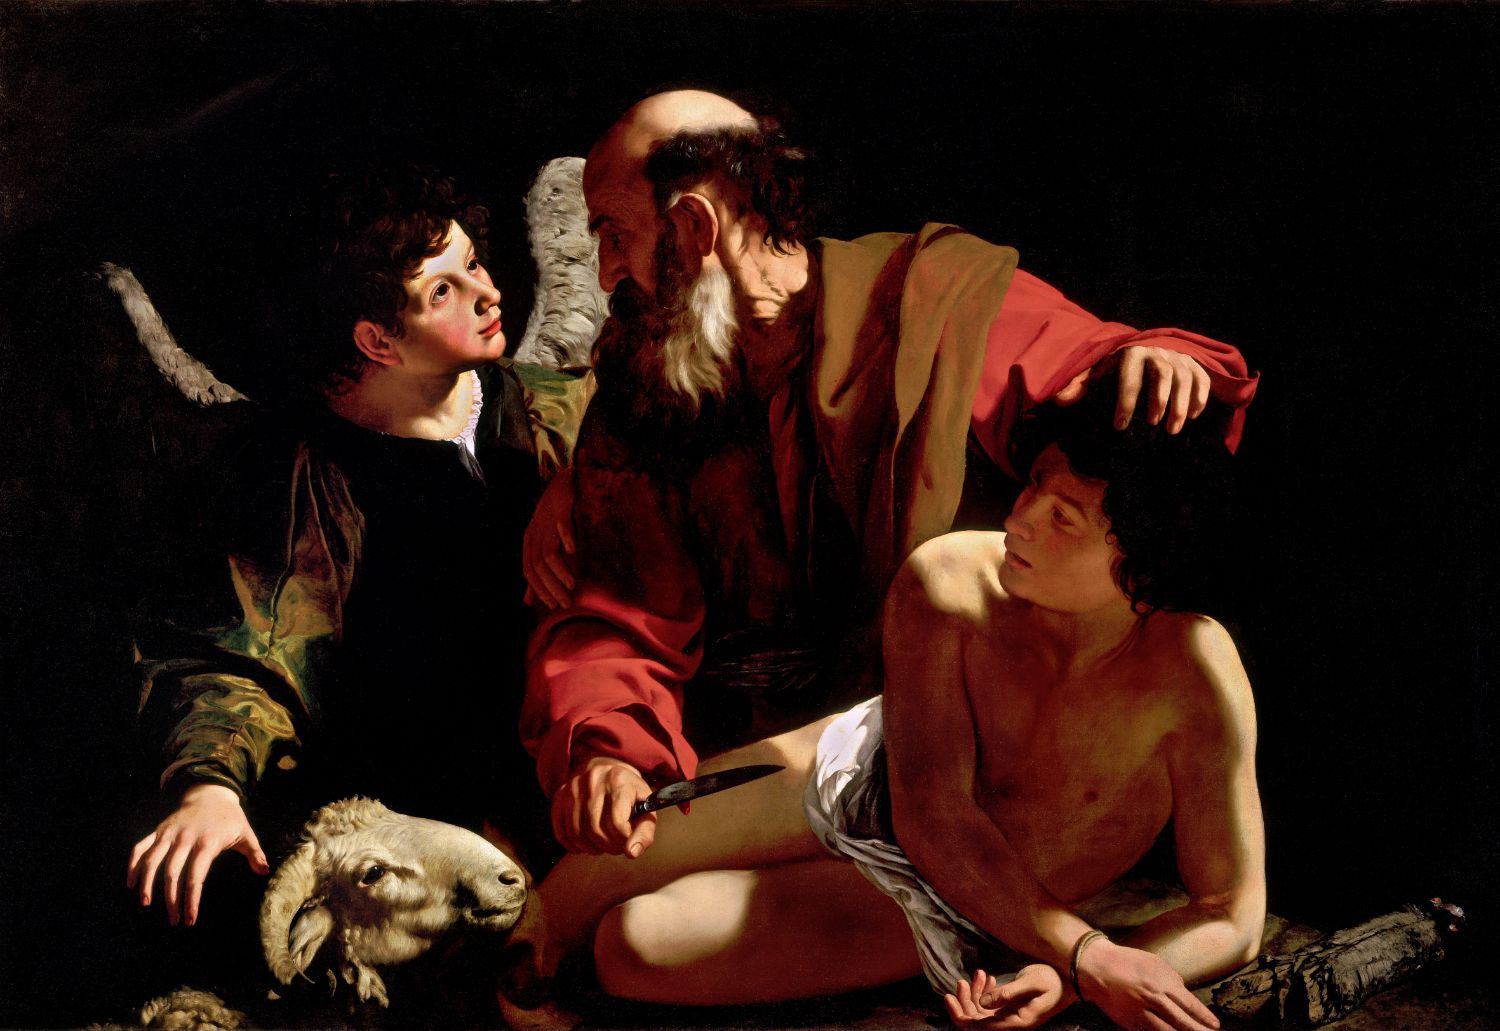 Caravaggio | Buy Posters, Frames, Canvas, Digital Art & Large Size Prints Of The Famous Old Master's Artworks